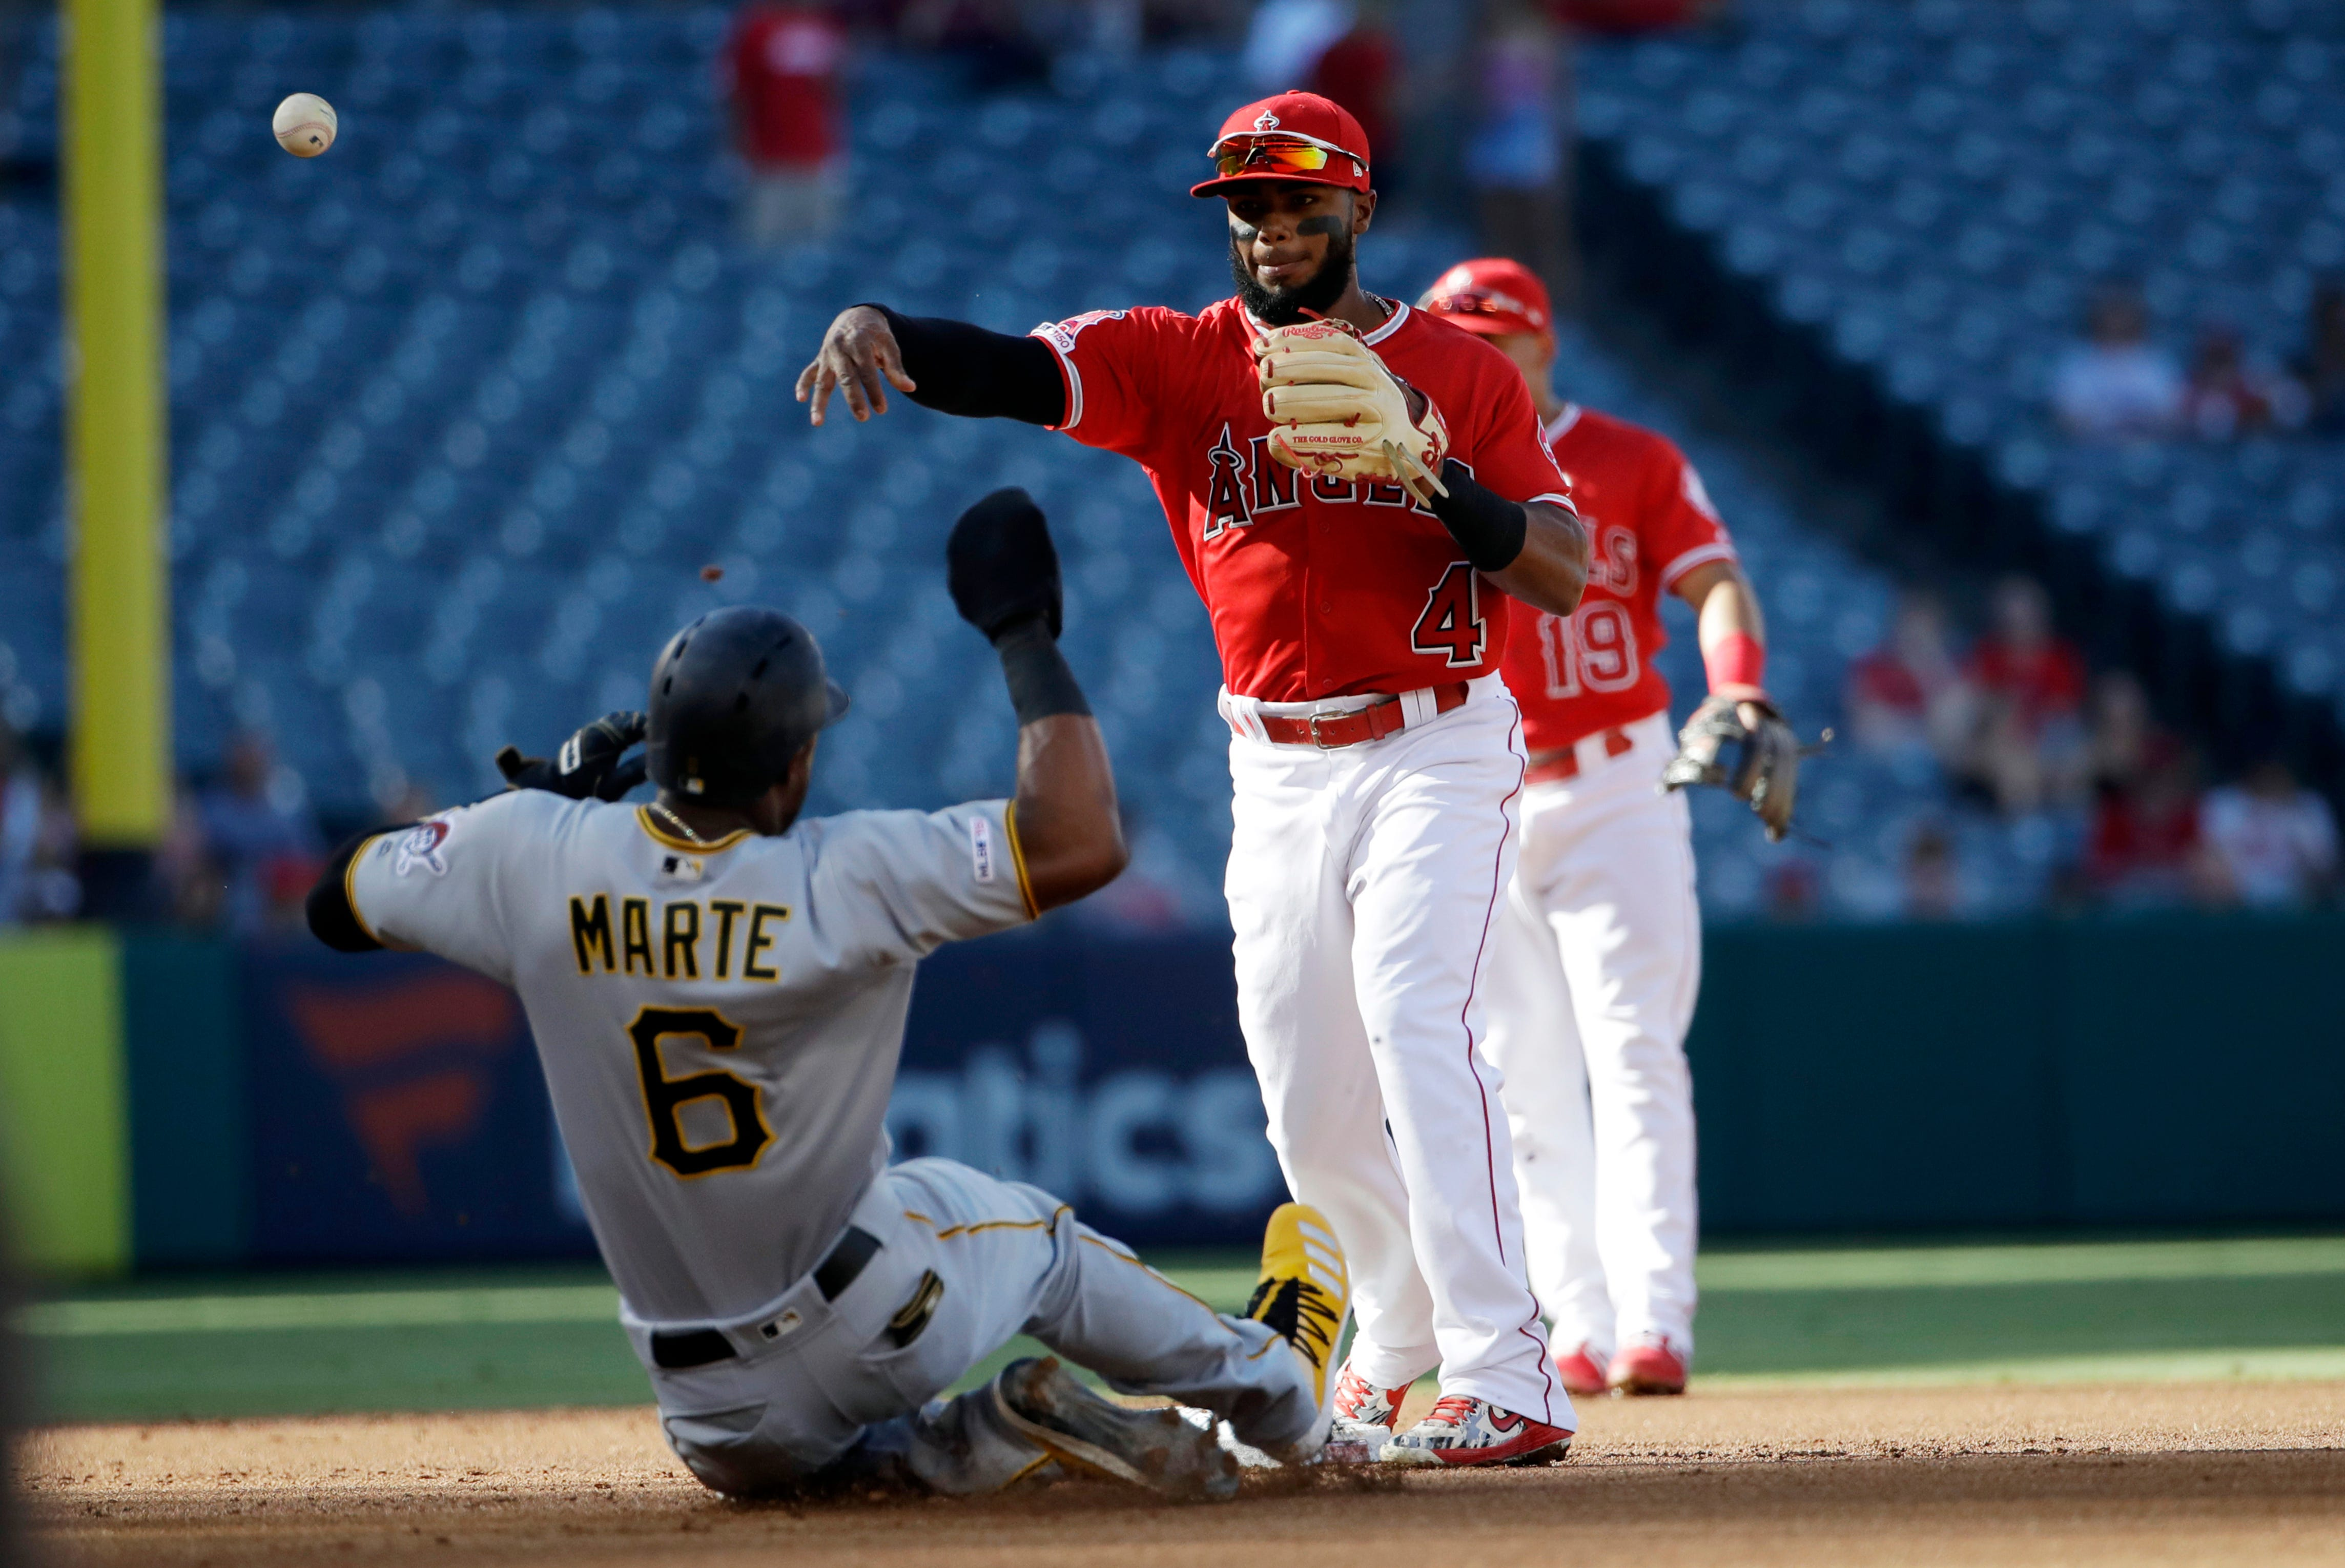 Pujols sets career hit mark for foreign-born players in win thumbnail